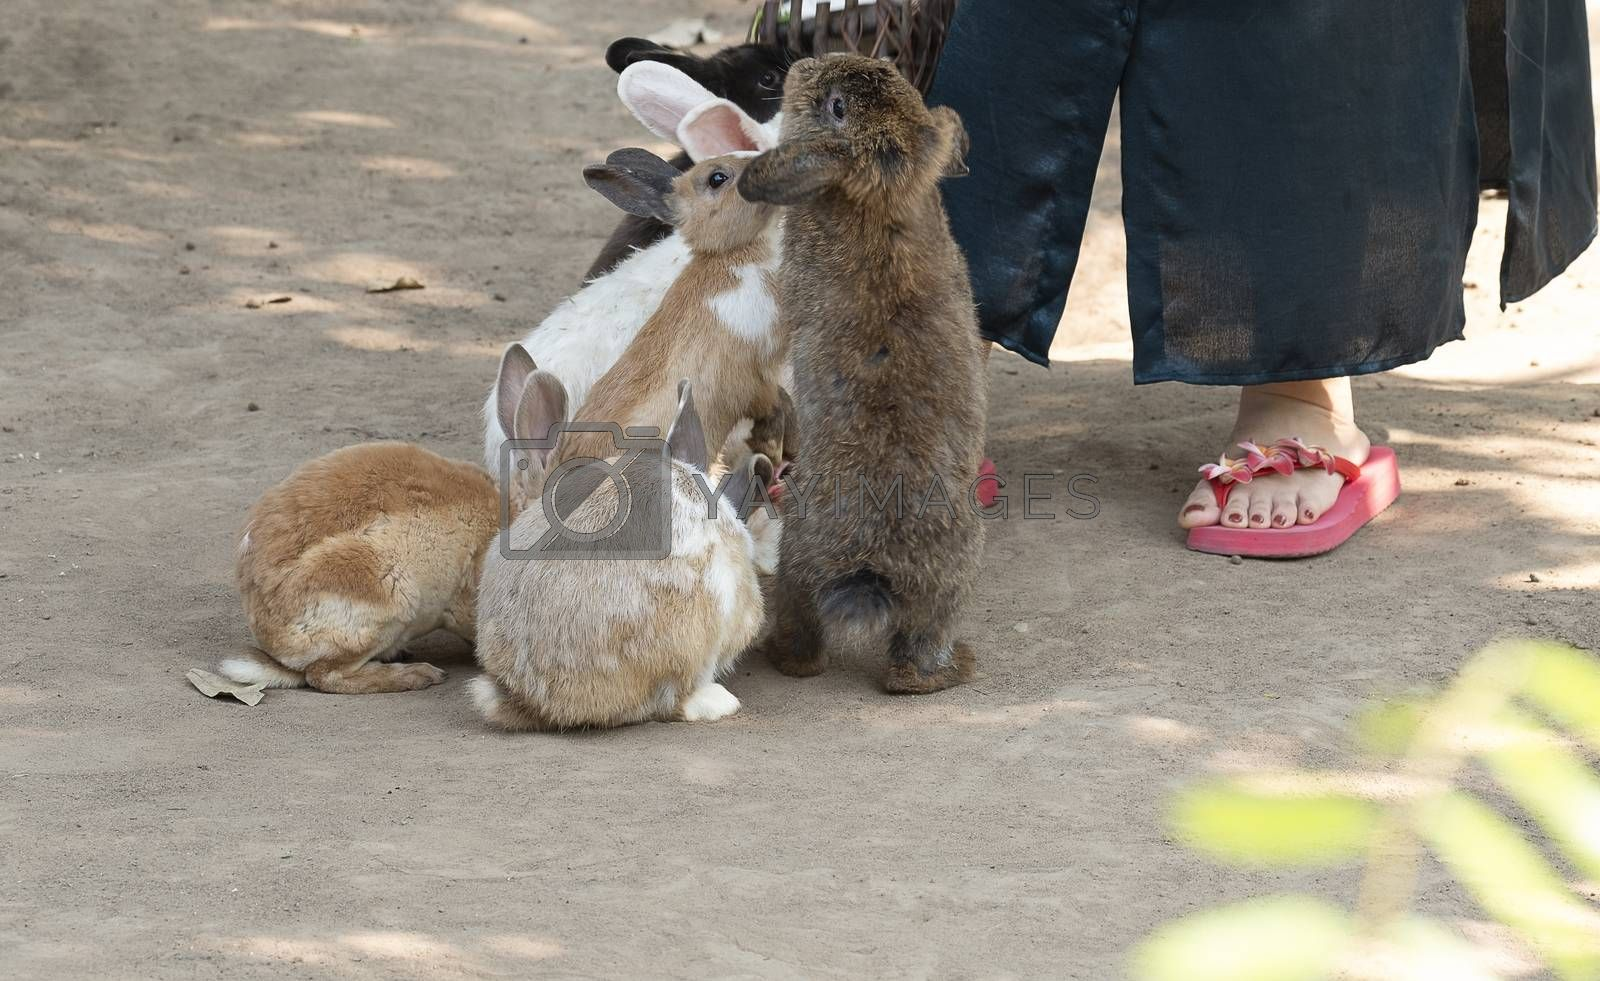 Cute little rabbits begging for food from a visitor at the petting zoo.  Animals activity focusing with a small part of an unidentifiable person as background.